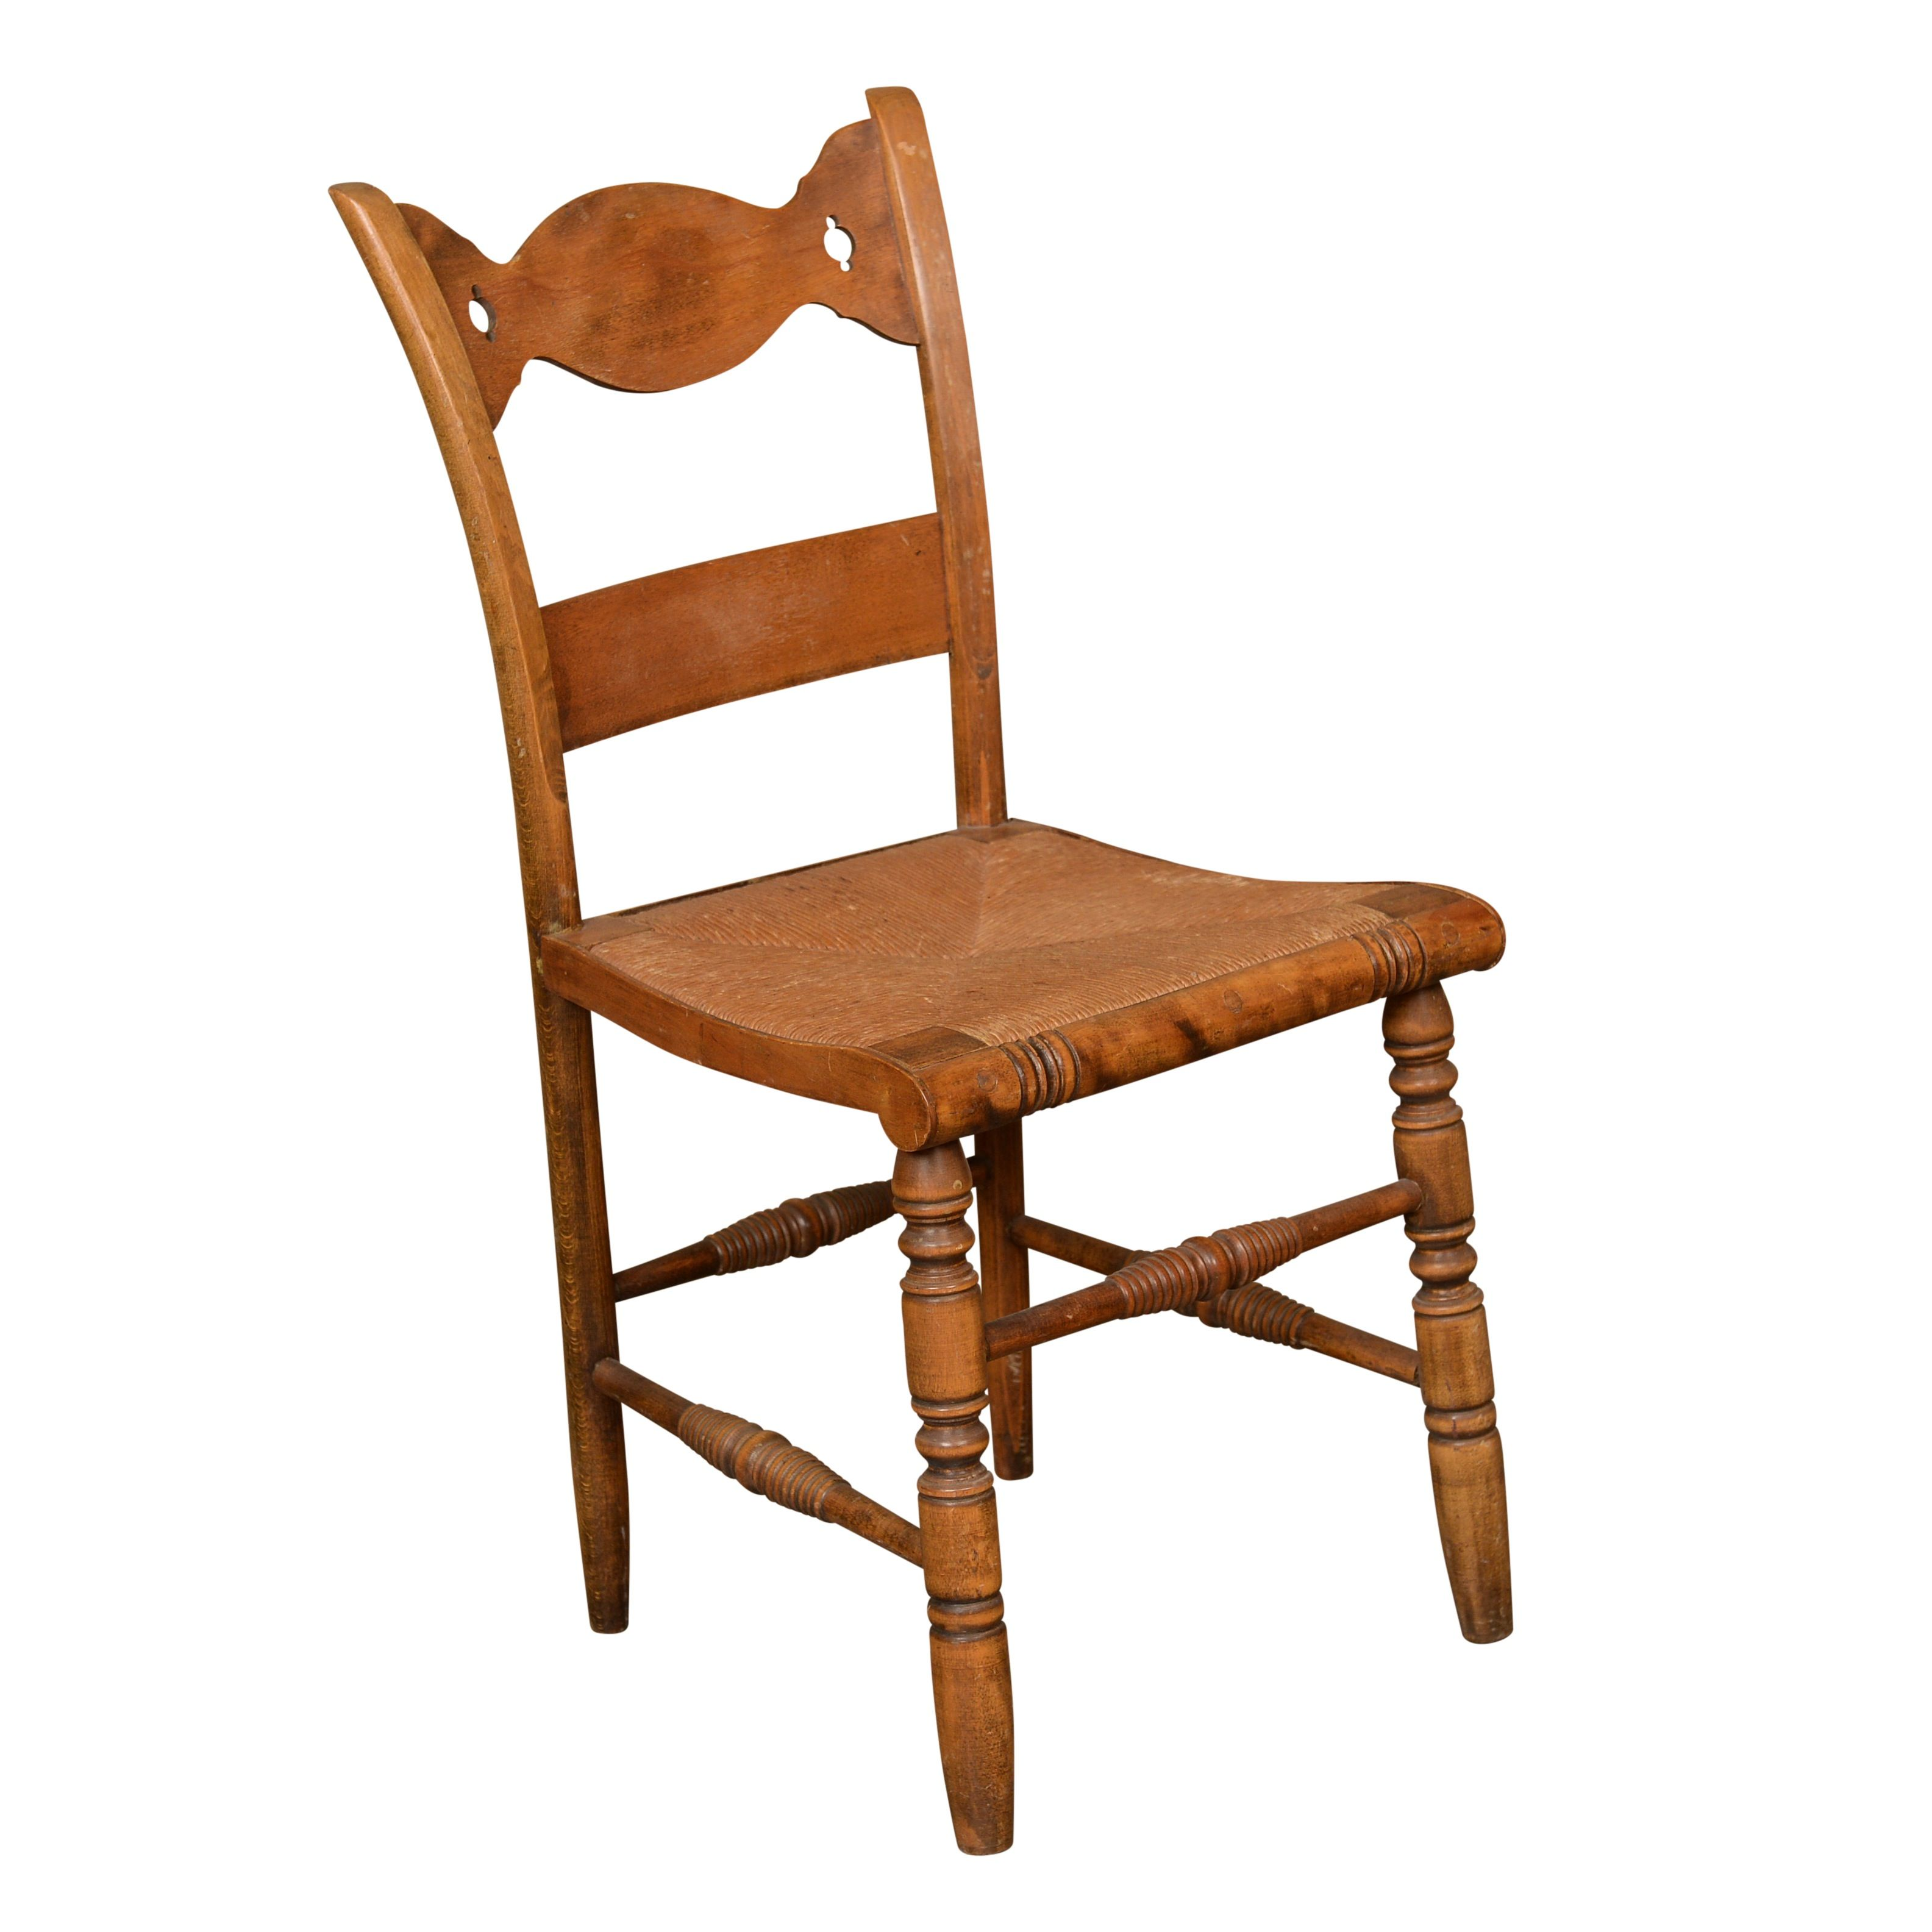 chair co pleasers rental weddings wedding rentals party event